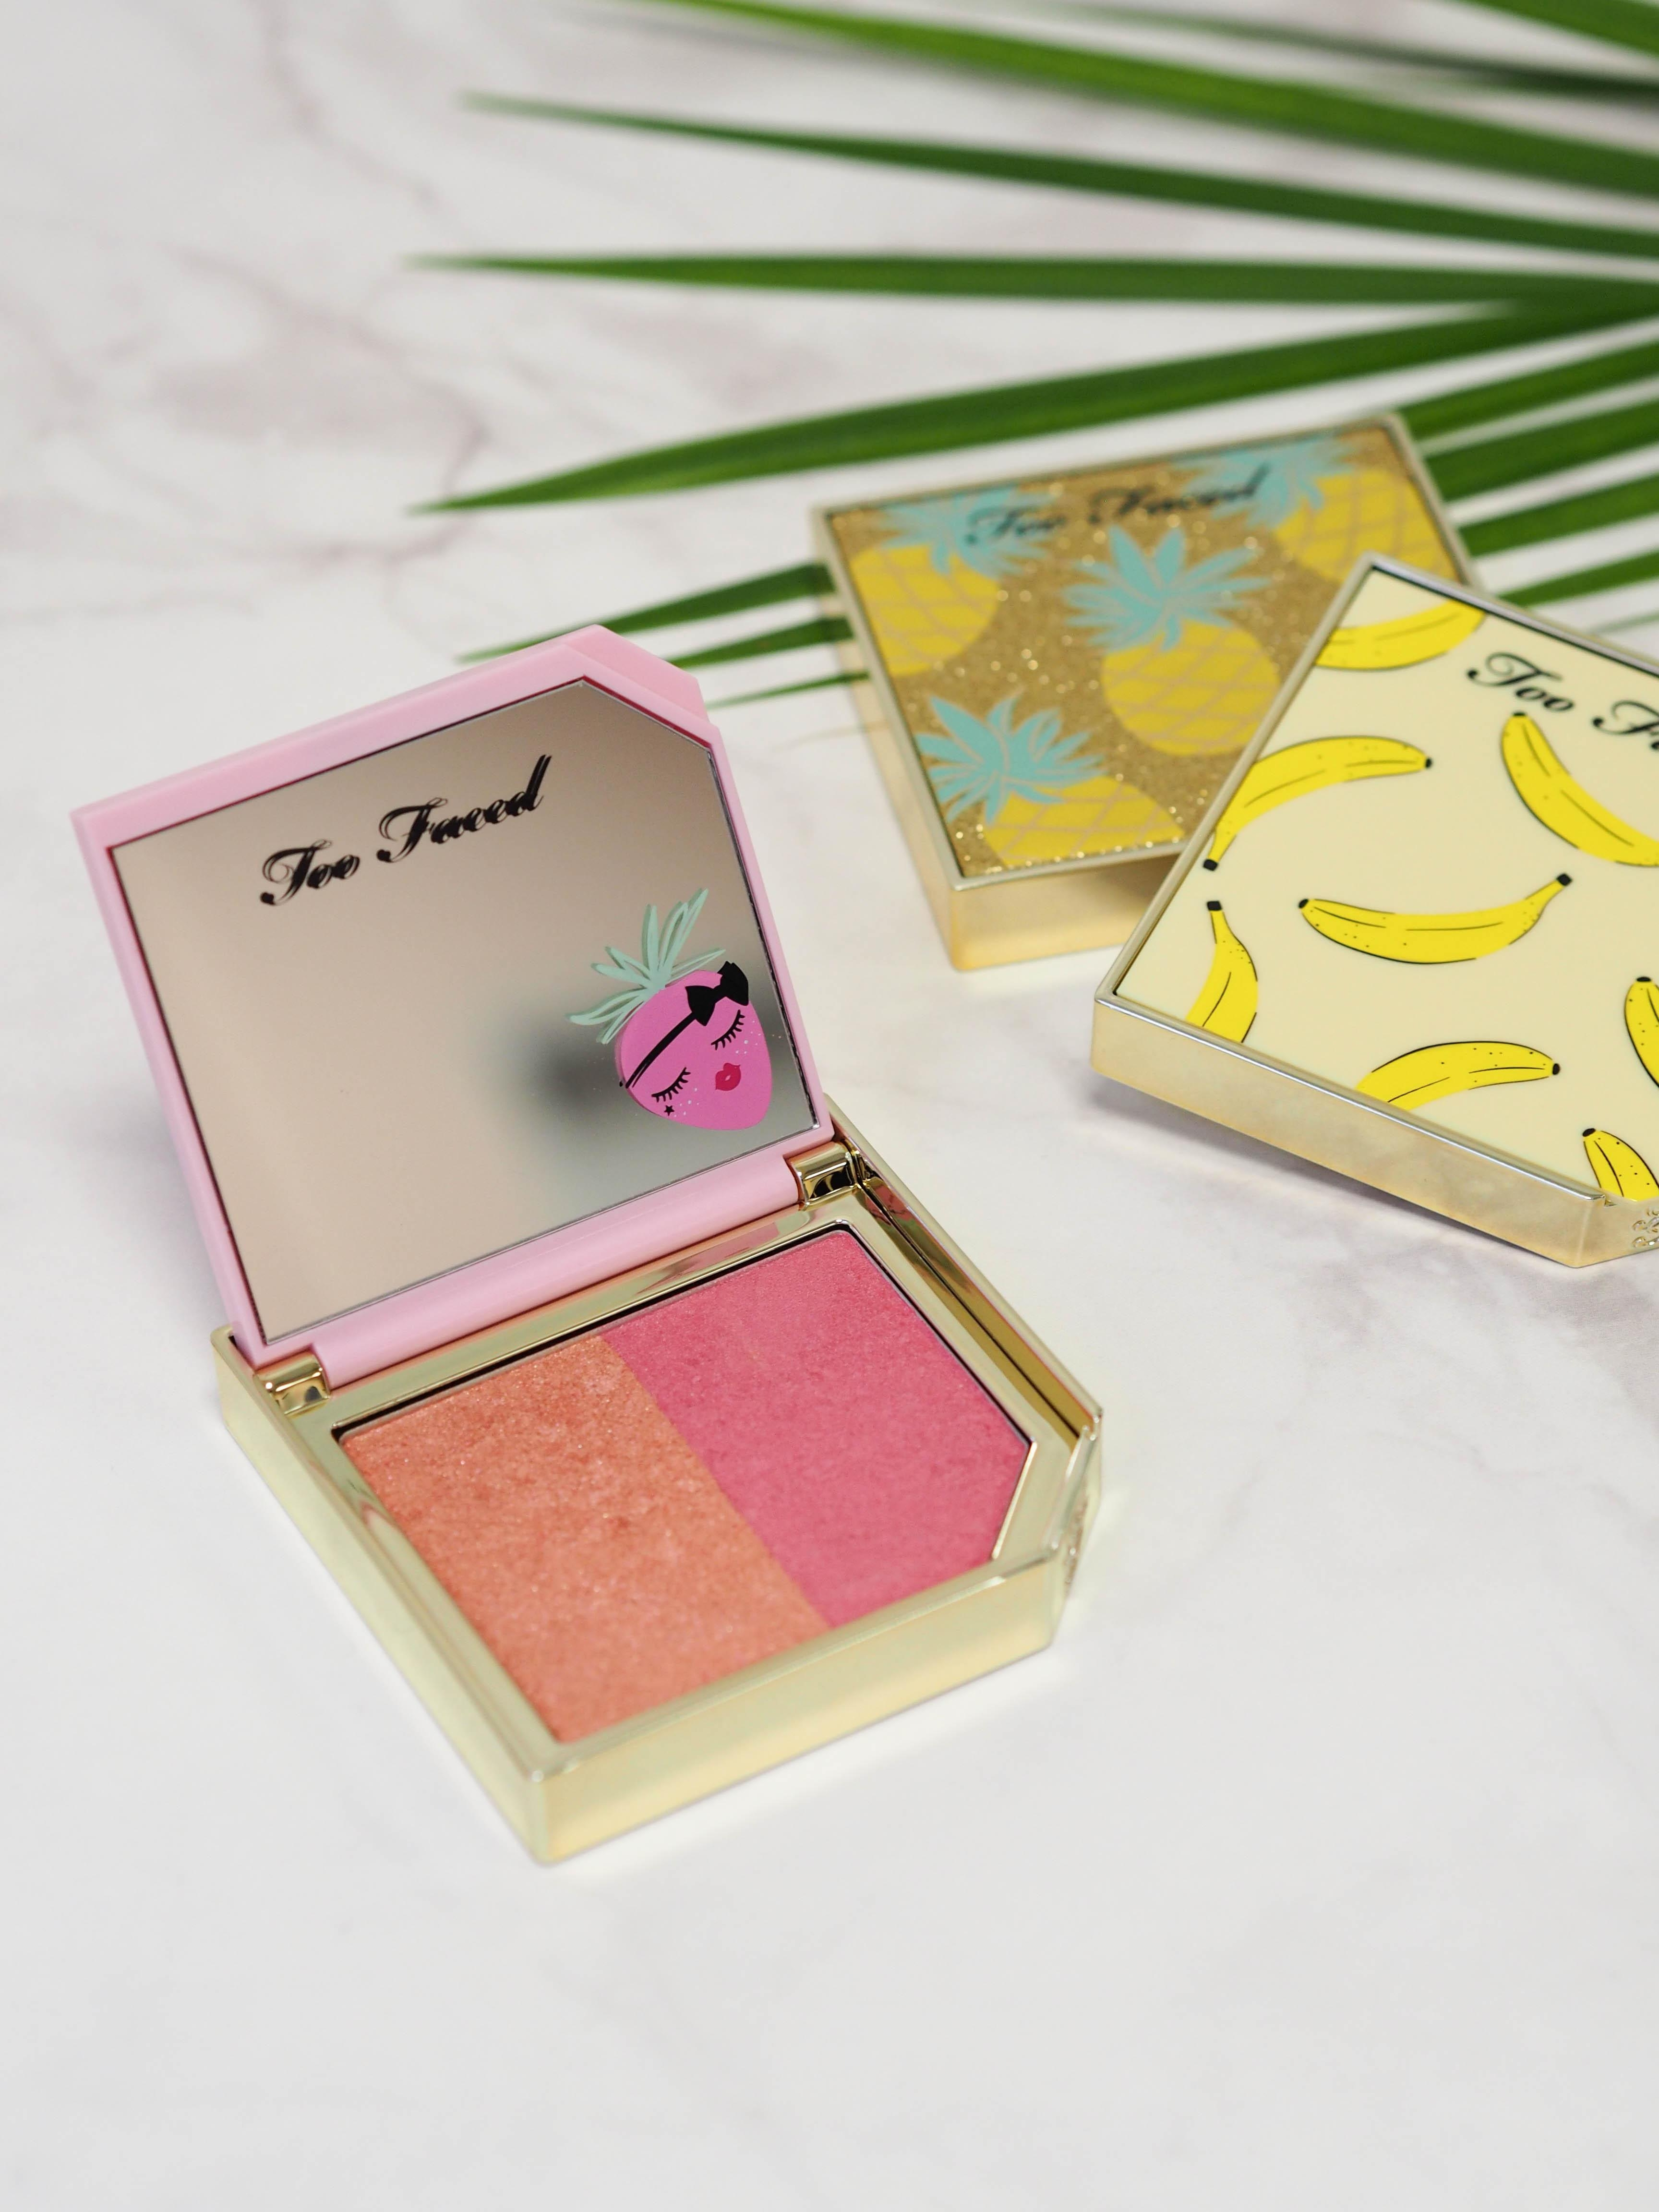 We go bananas! Puder, Rouge und Highlighter von Too Faced duften fruchtig #beautylieblinge #toofaced